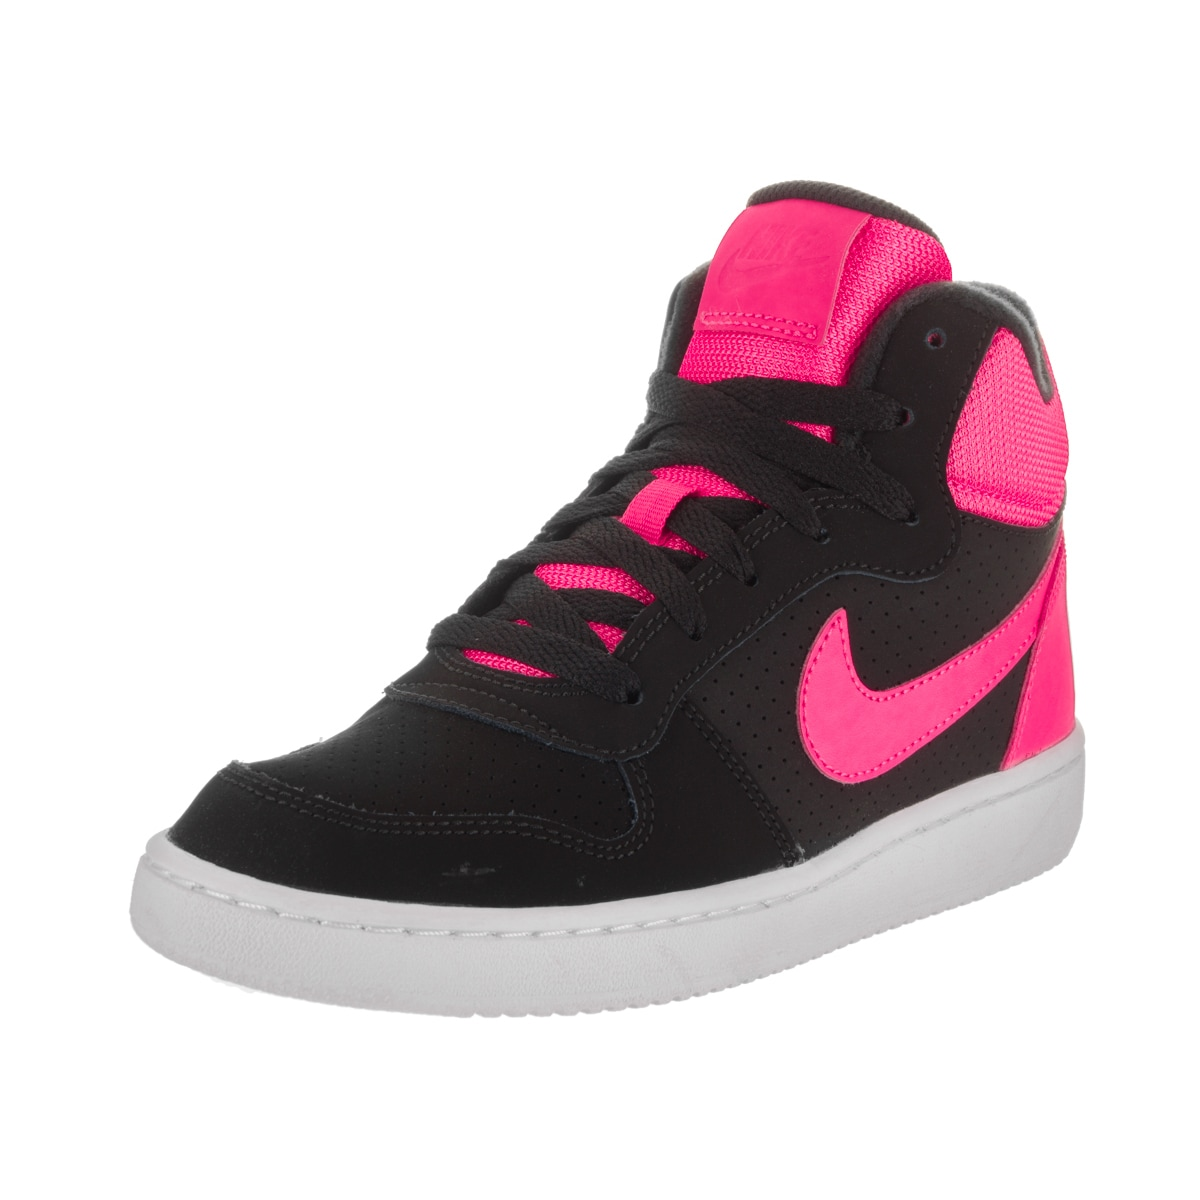 b54a78f60727 Shop Nike Kids Court Borough Mid (GS) Basketball Shoes - Free Shipping  Today - Overstock - 14092753